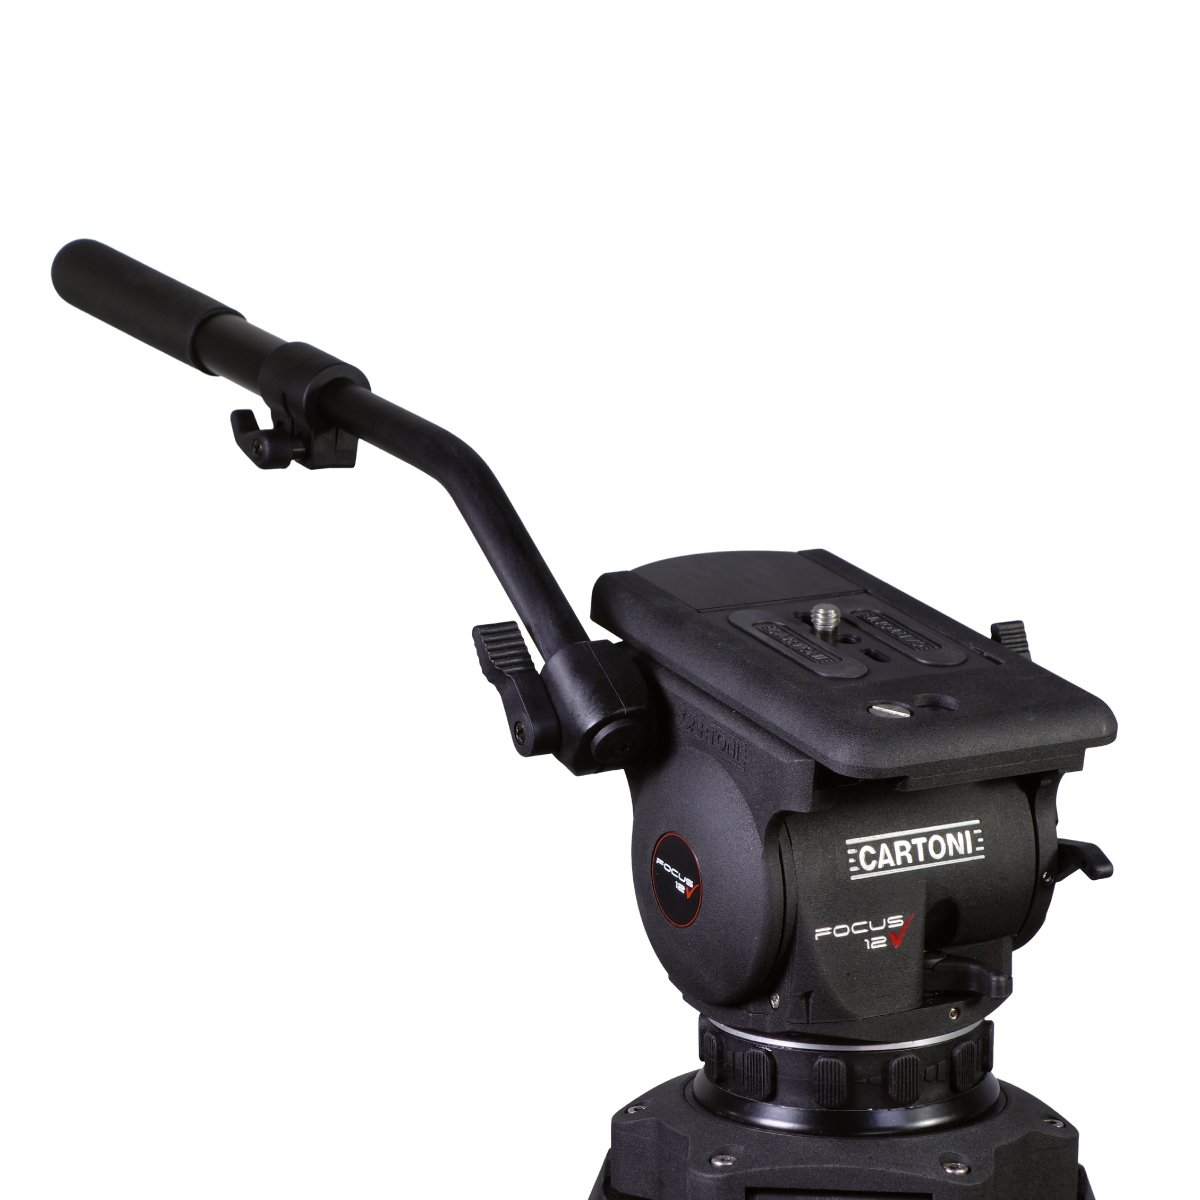 Focus 12 2-Stage CF Smart Stop Tripod wtih Mid Level Spreader